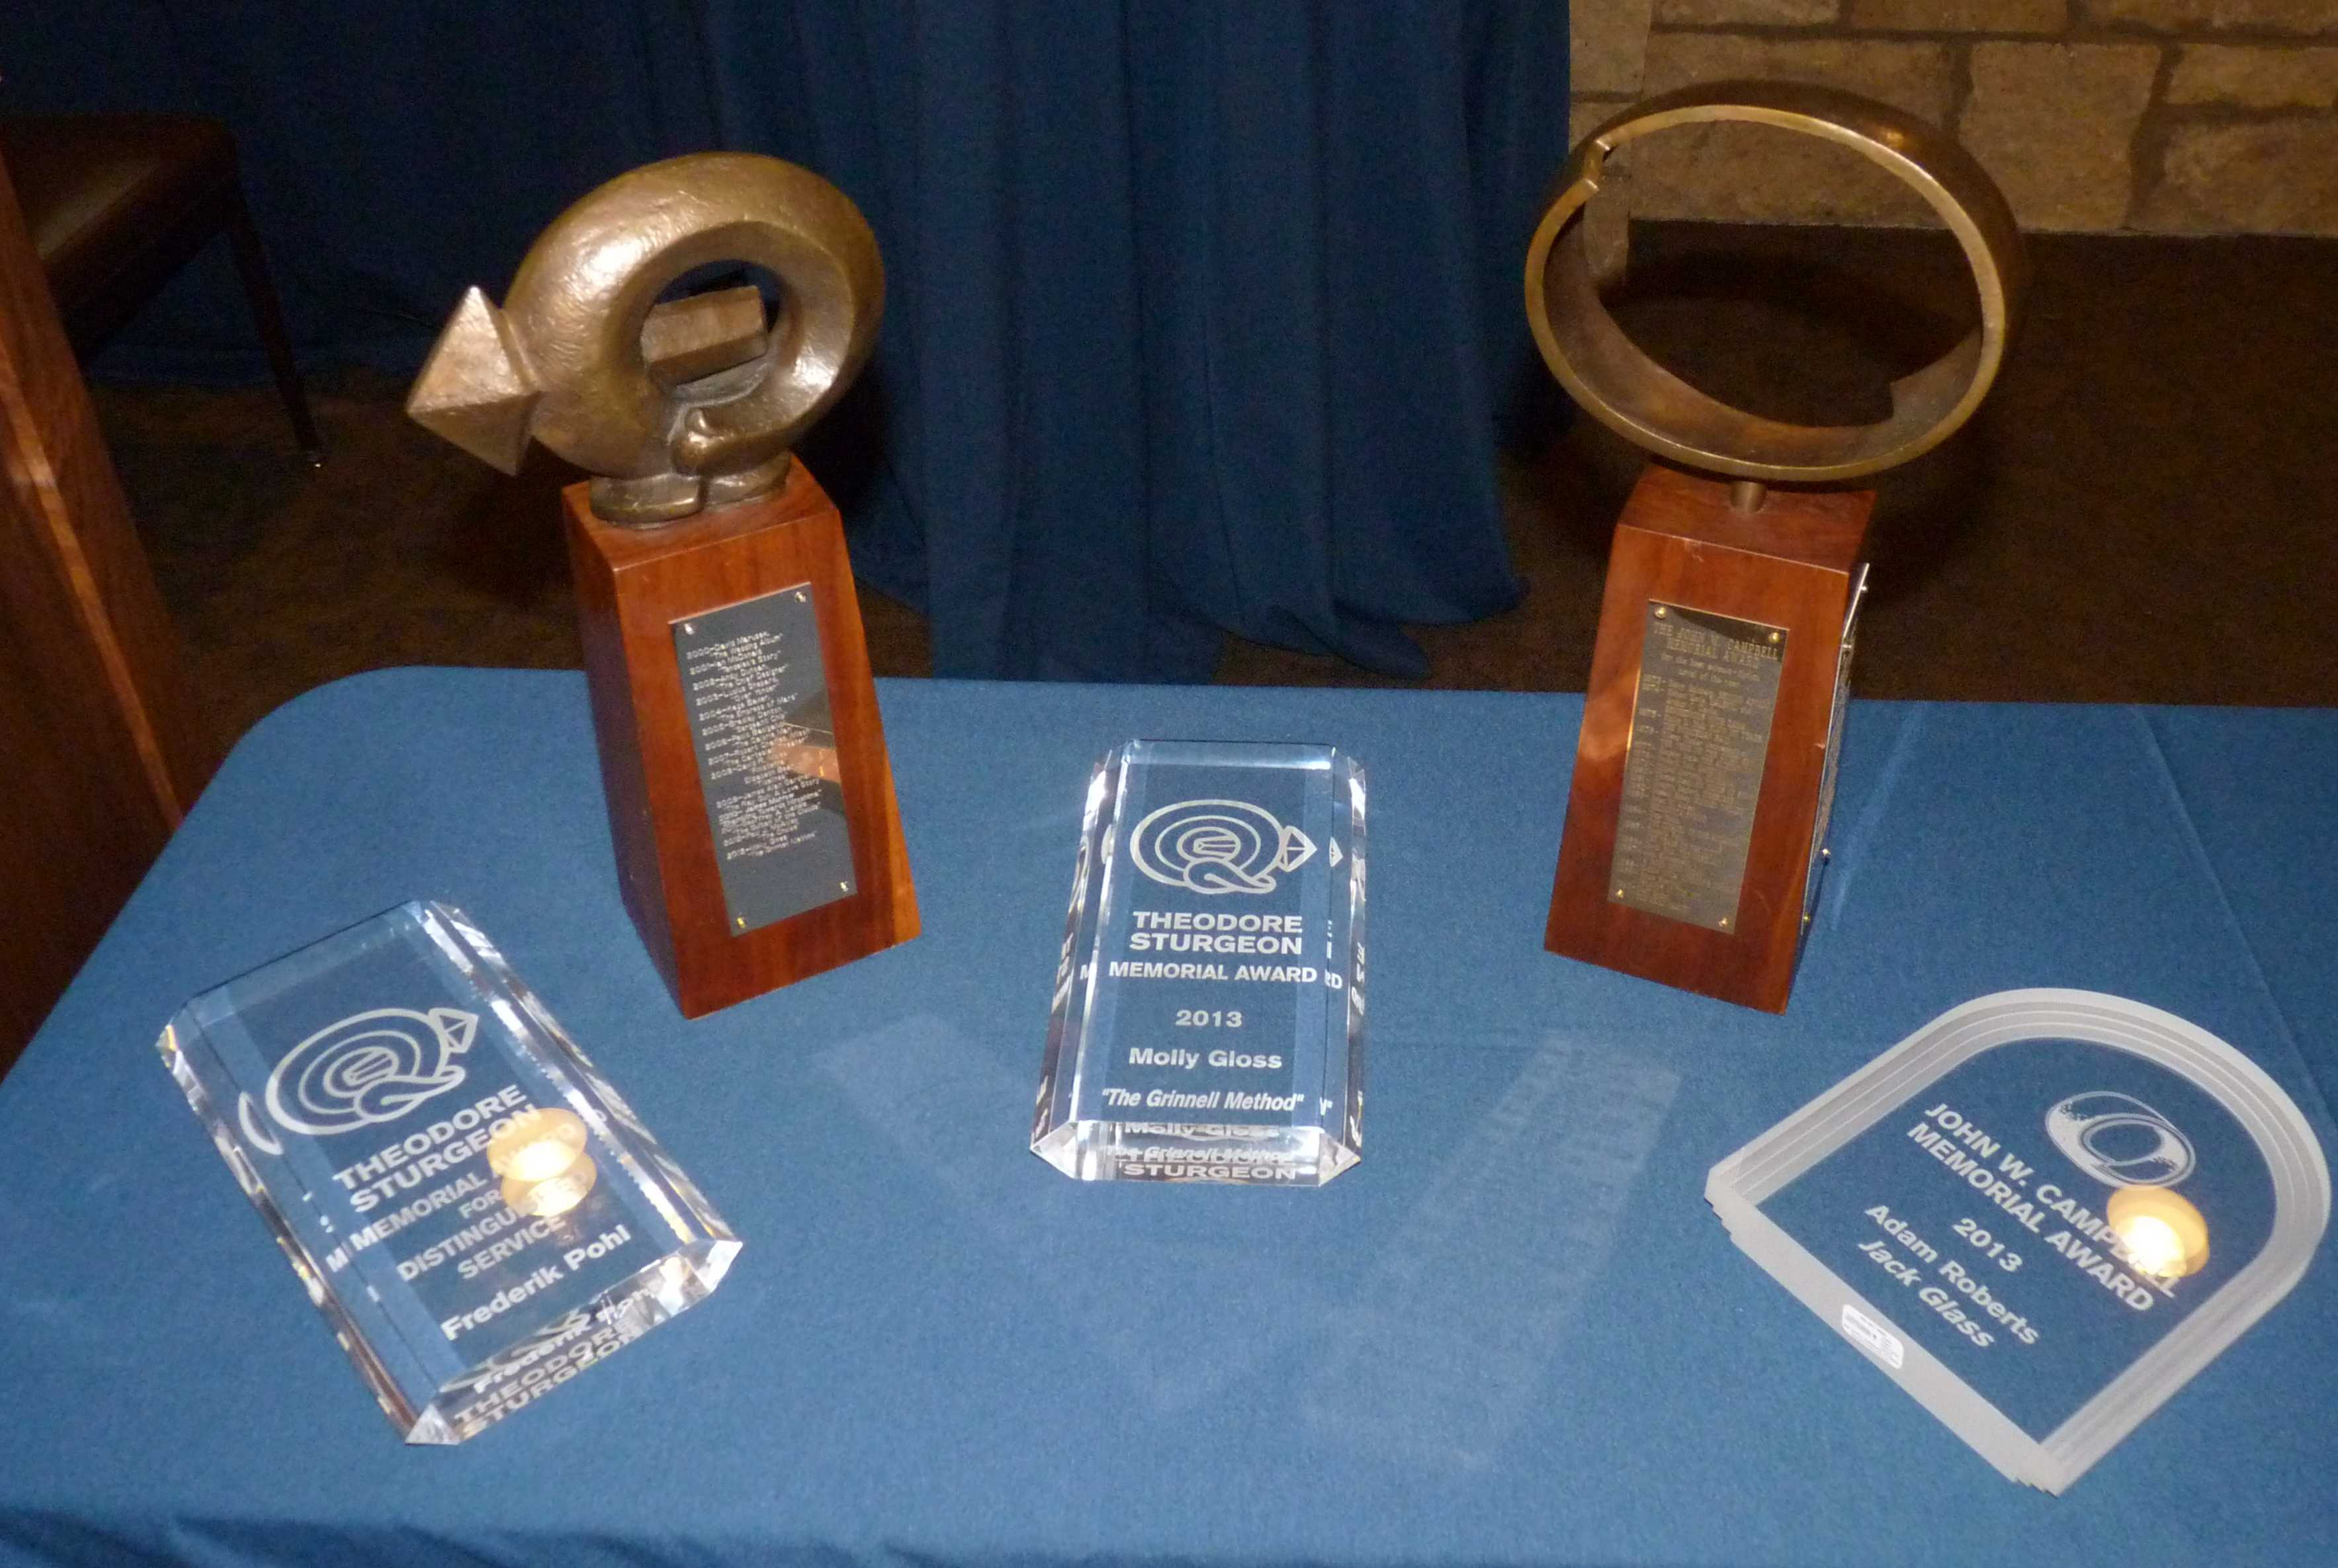 Sturgeon and Campbell Awards. Photo courtesy of C.J. Harries.